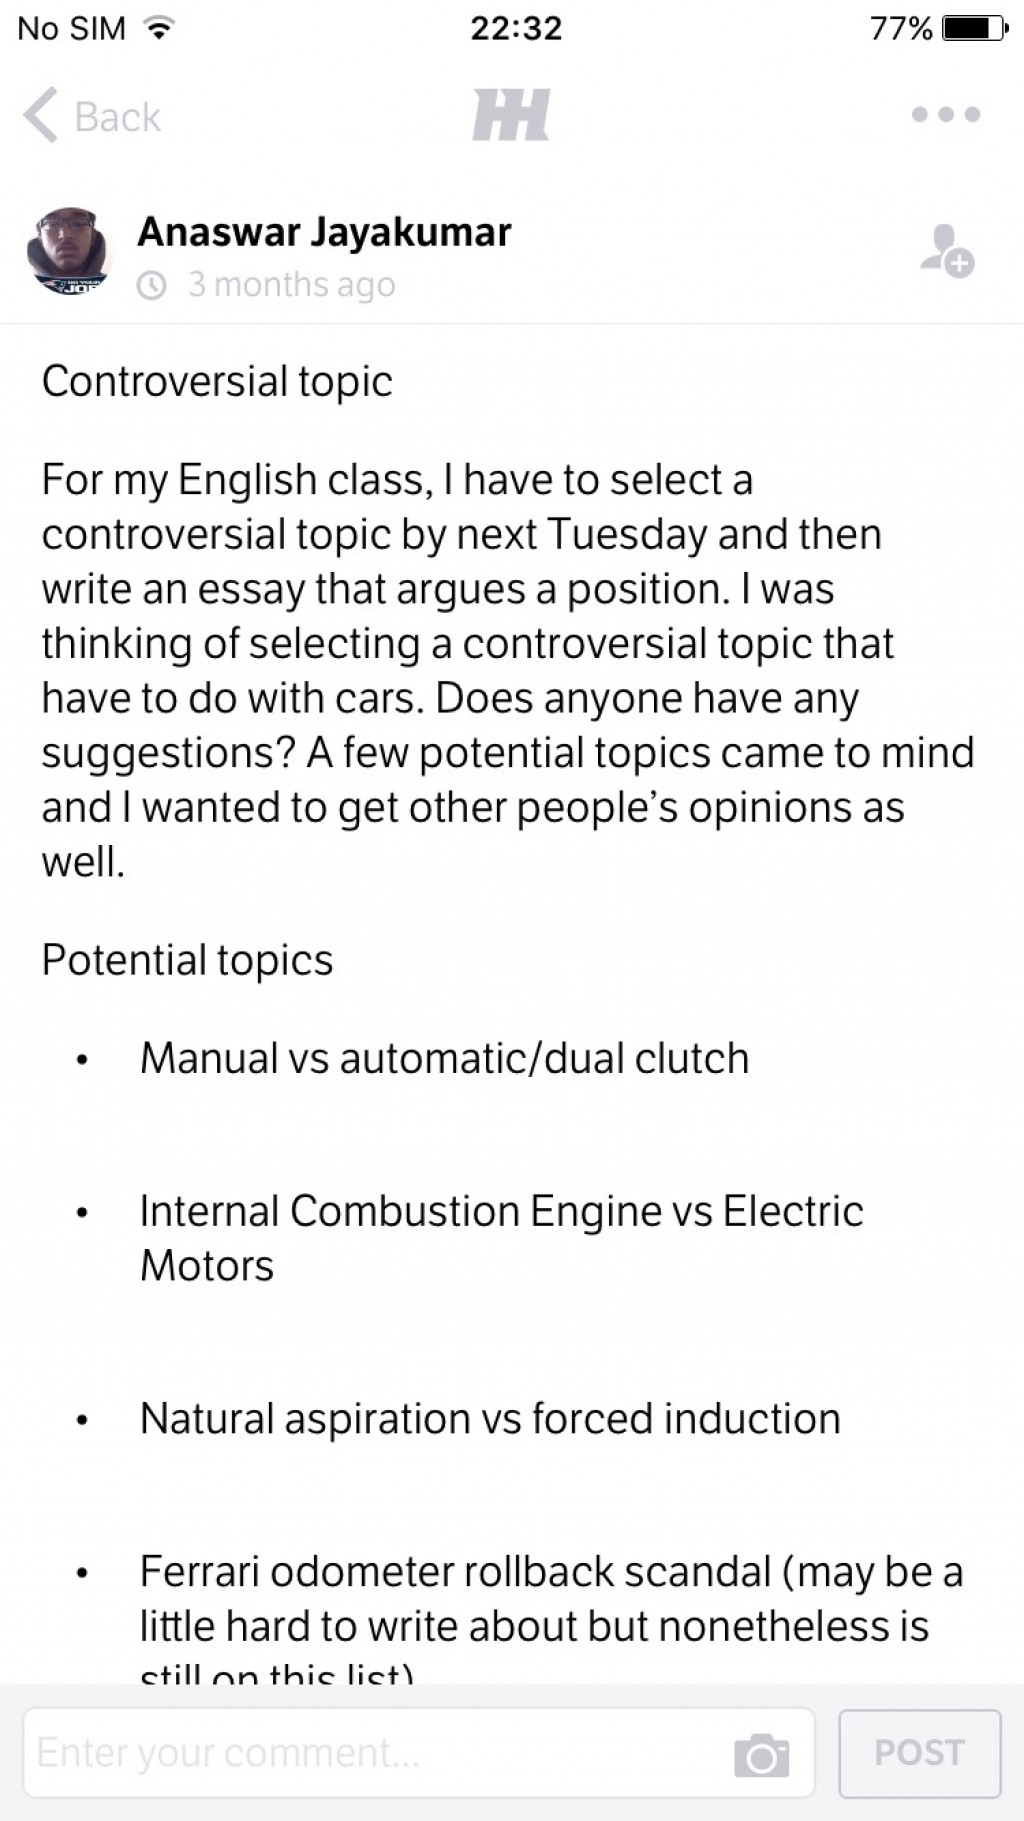 015 Research Paper Controversial Topic Essay Topics Example Outline Issue20 For Dreaded Persuasive Large